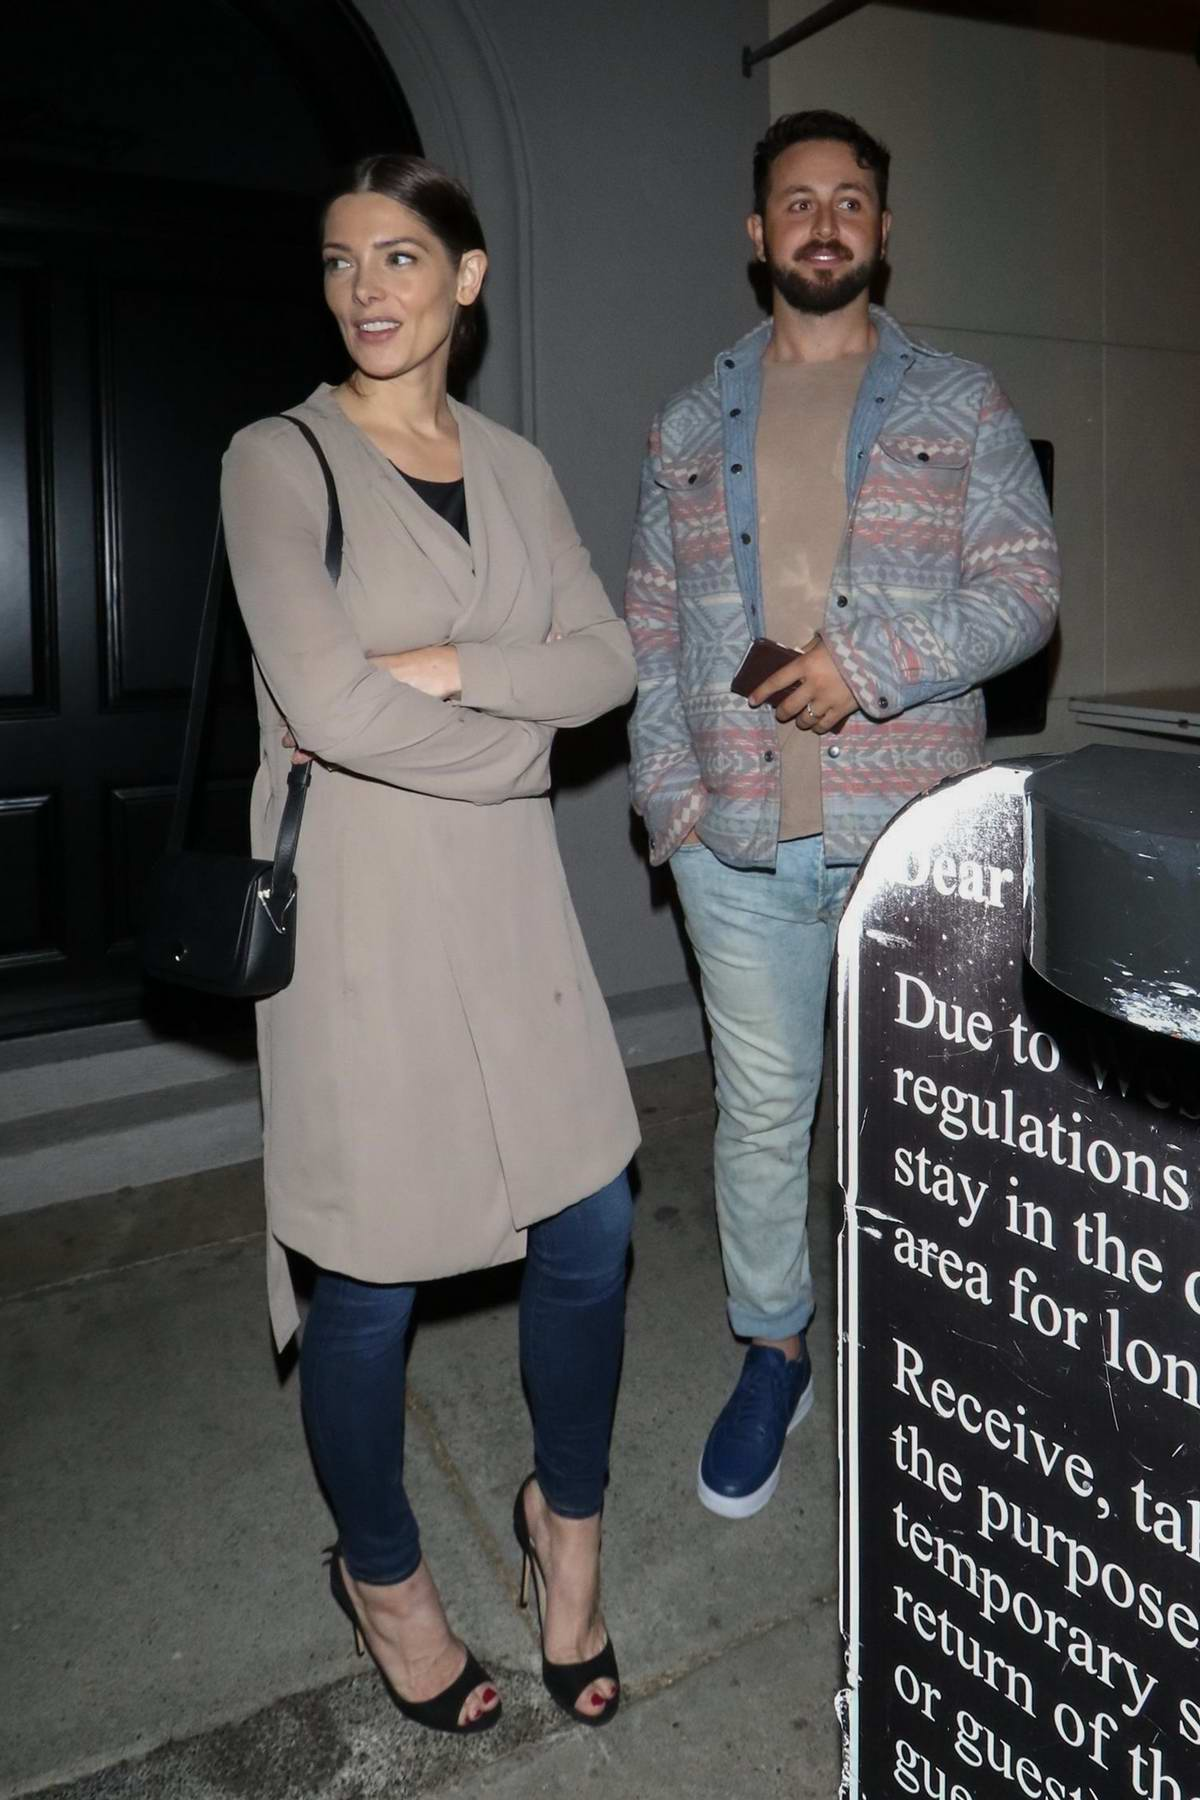 Ashley Greene and Paul Khoury waits for their car after dinner at Craig's Restaurant in West Hollywood, Los Angeles